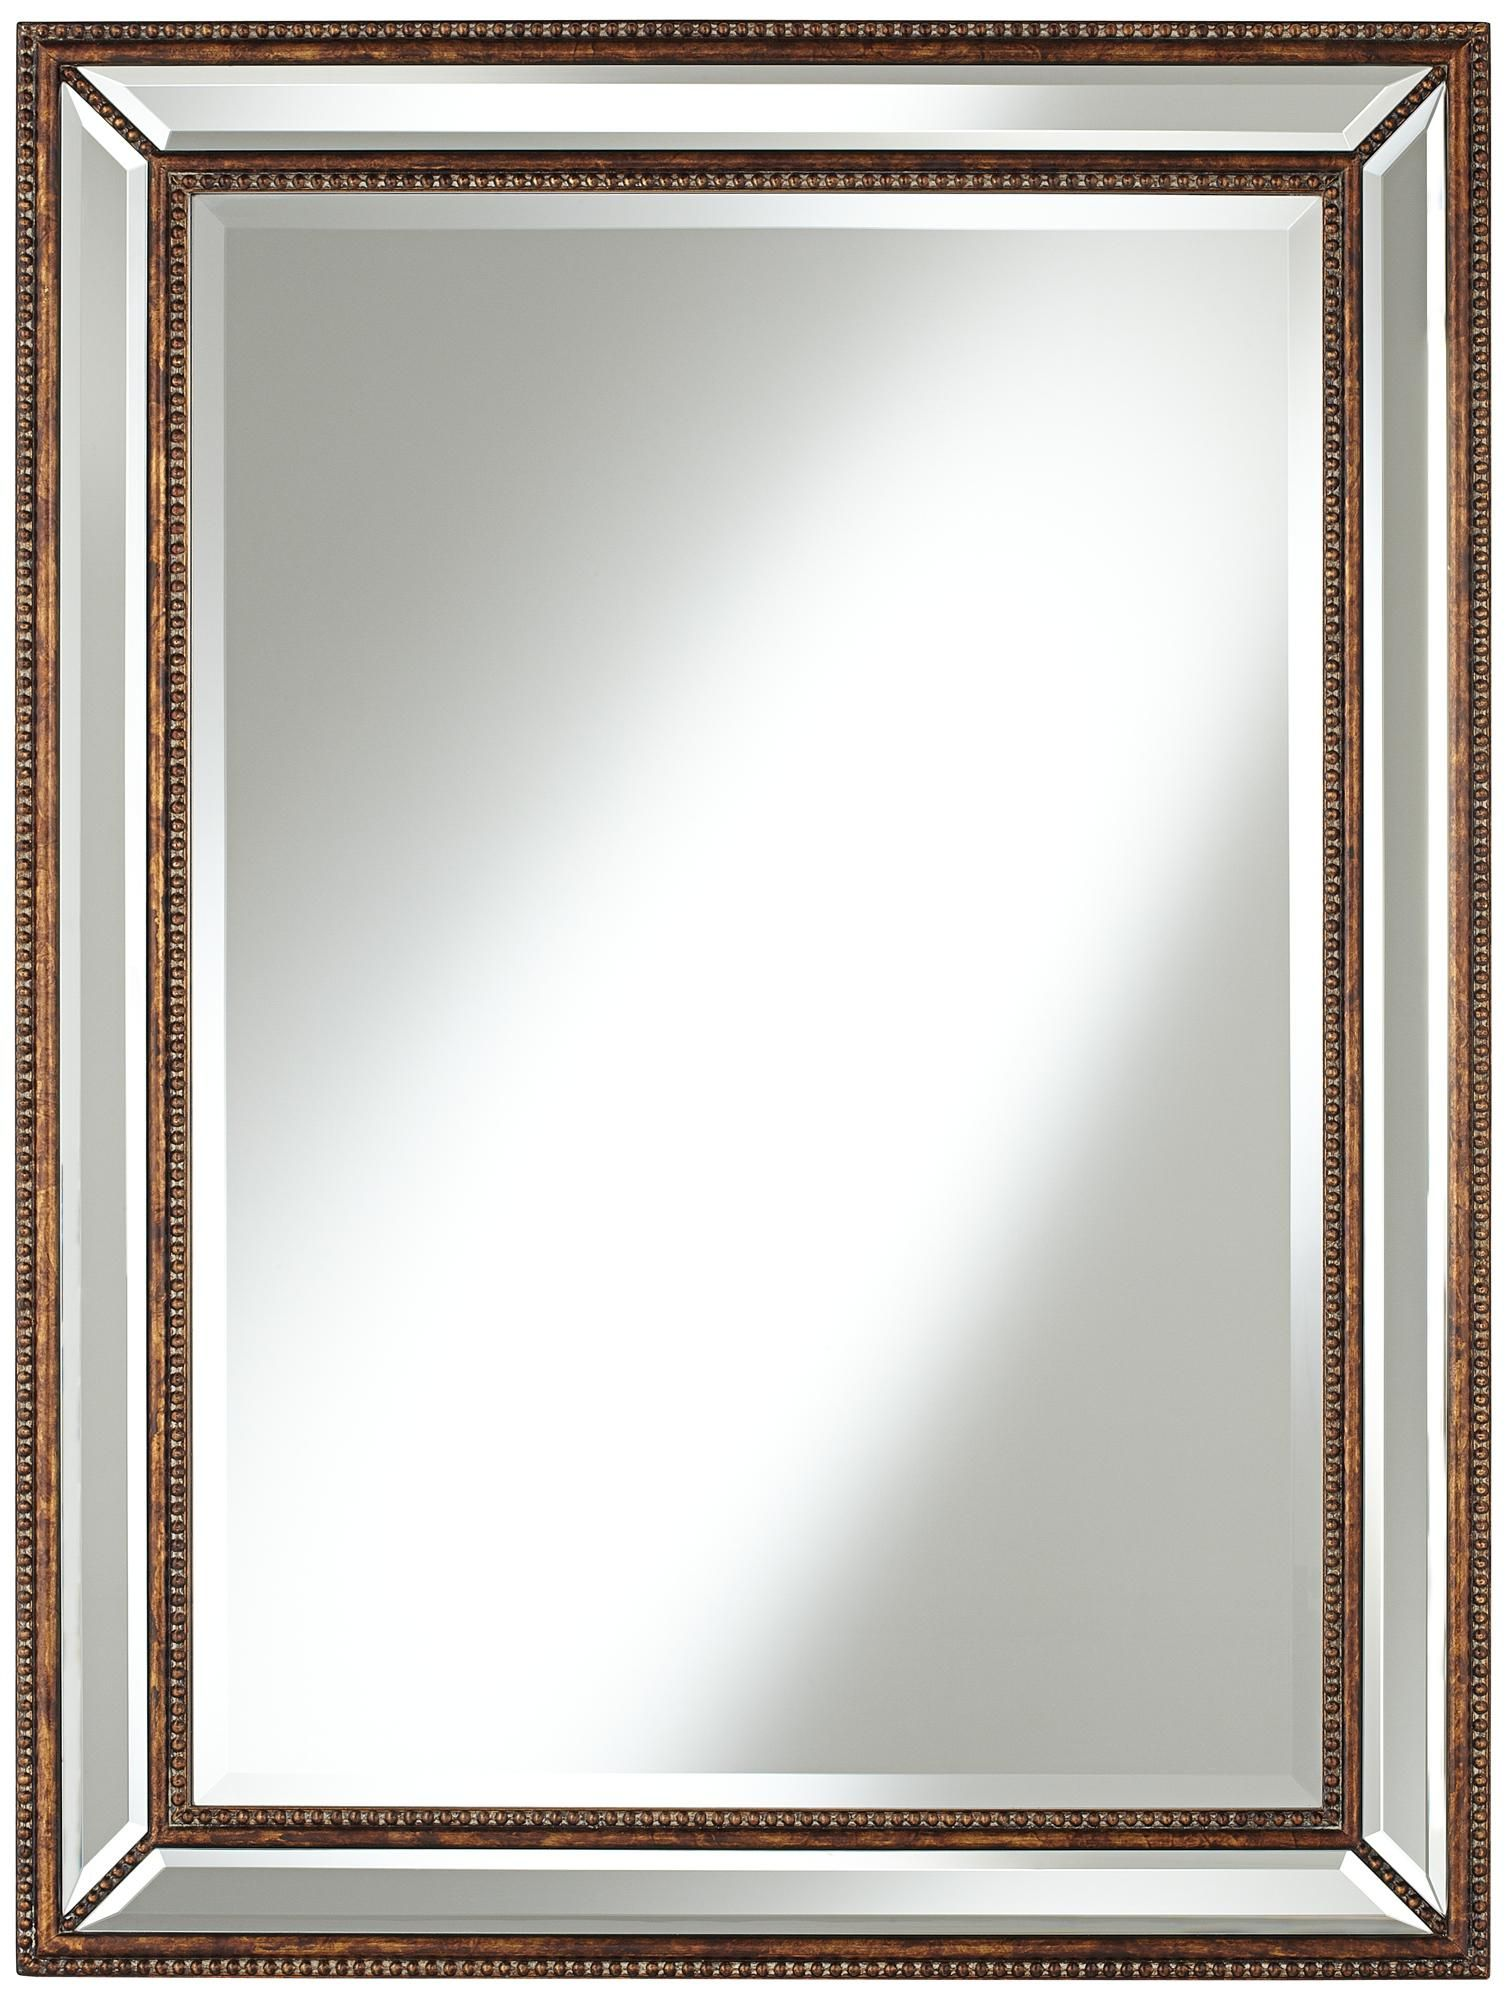 Uttermost Palais Bronze 30 X 40 Beaded Wall Mirror Y6594 Lamps Plus In 2021 Mirror Wall Wall Mirror Online Framed Mirror Wall